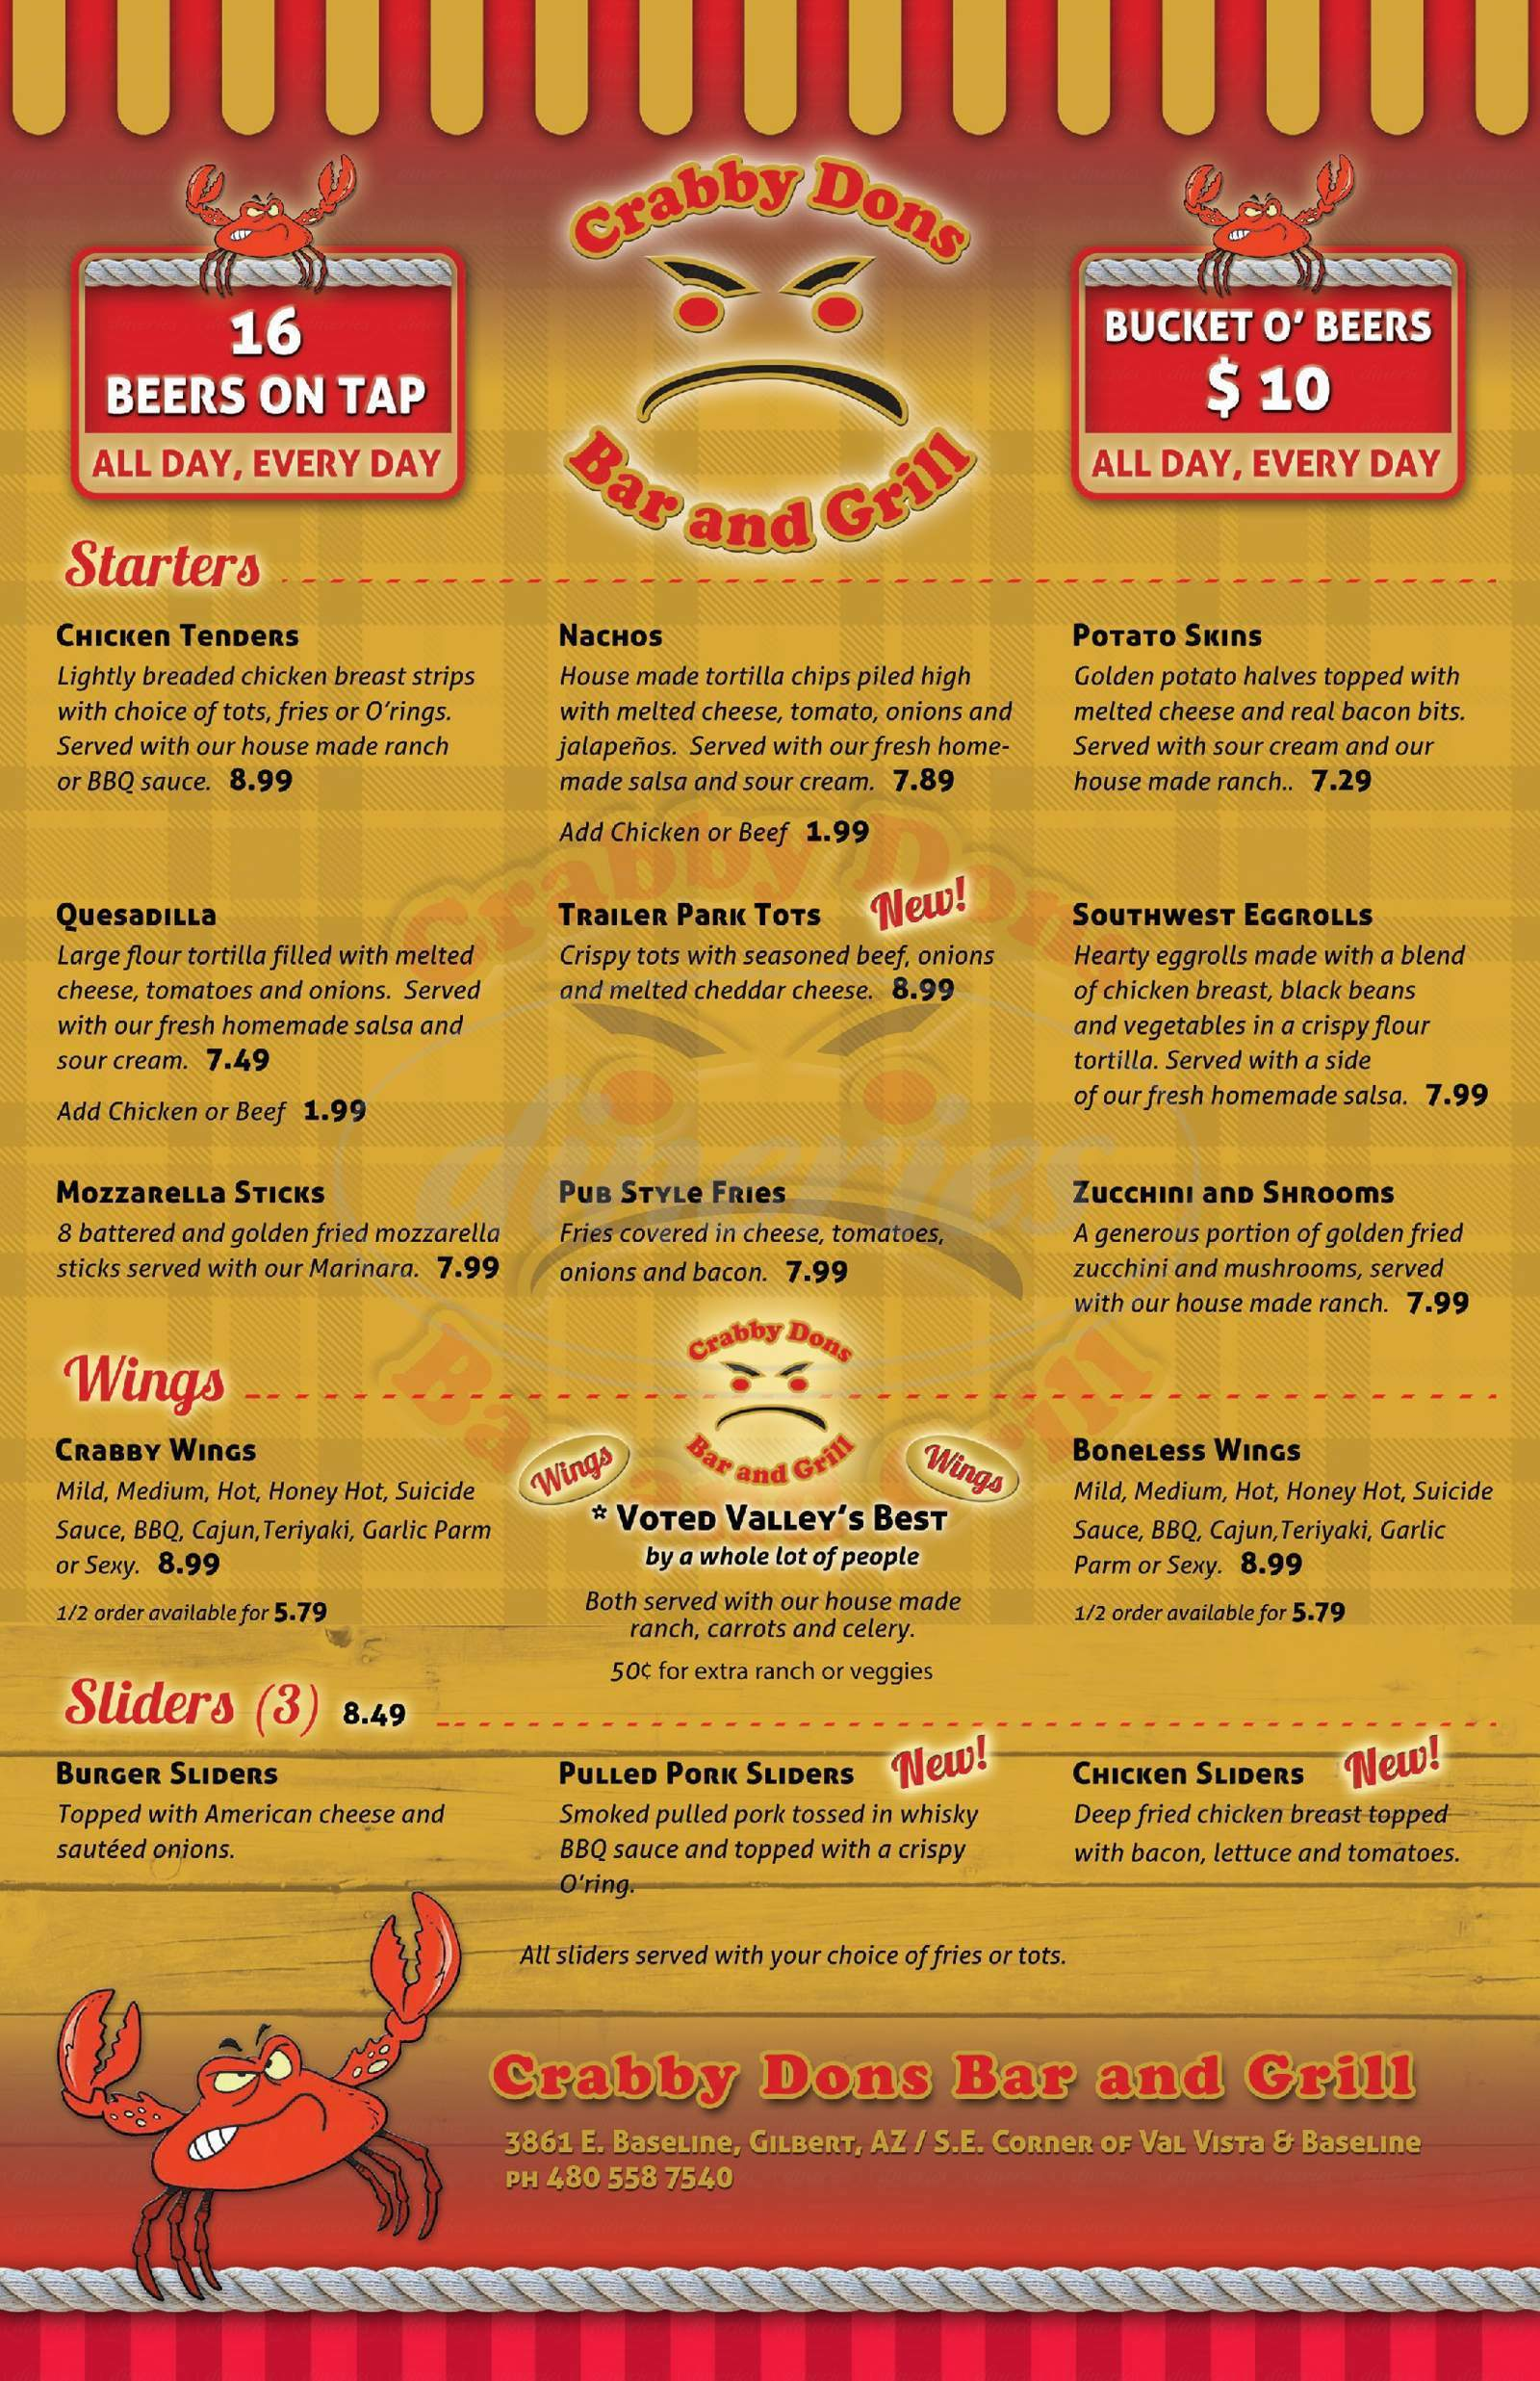 menu for Crabby Don's Bar & Grill